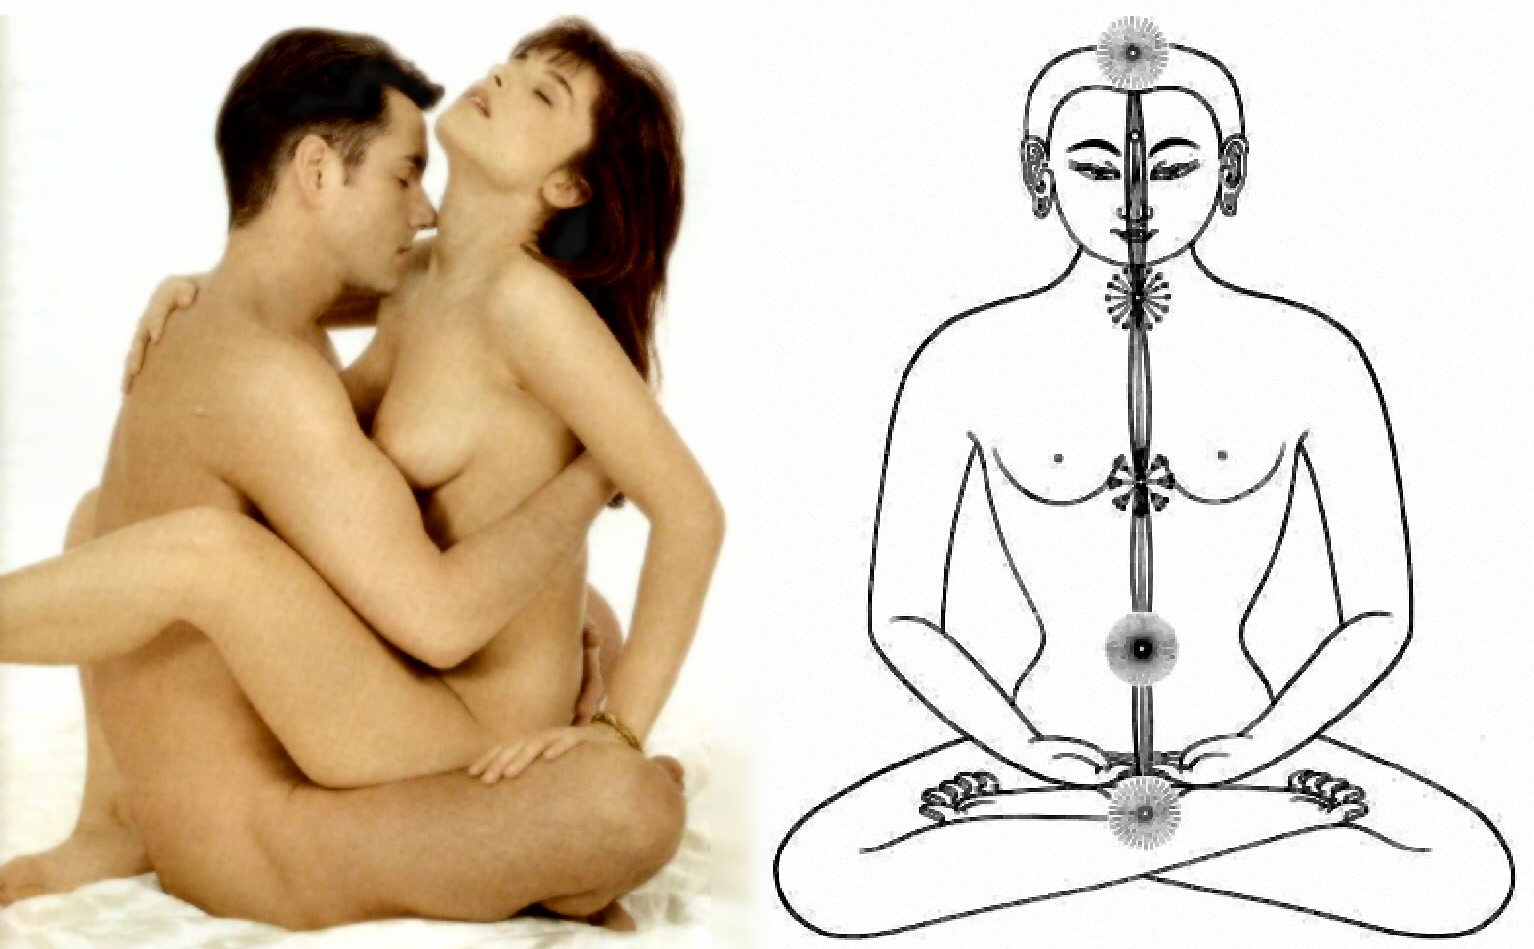 A sacred kama sutra love making techniques 8